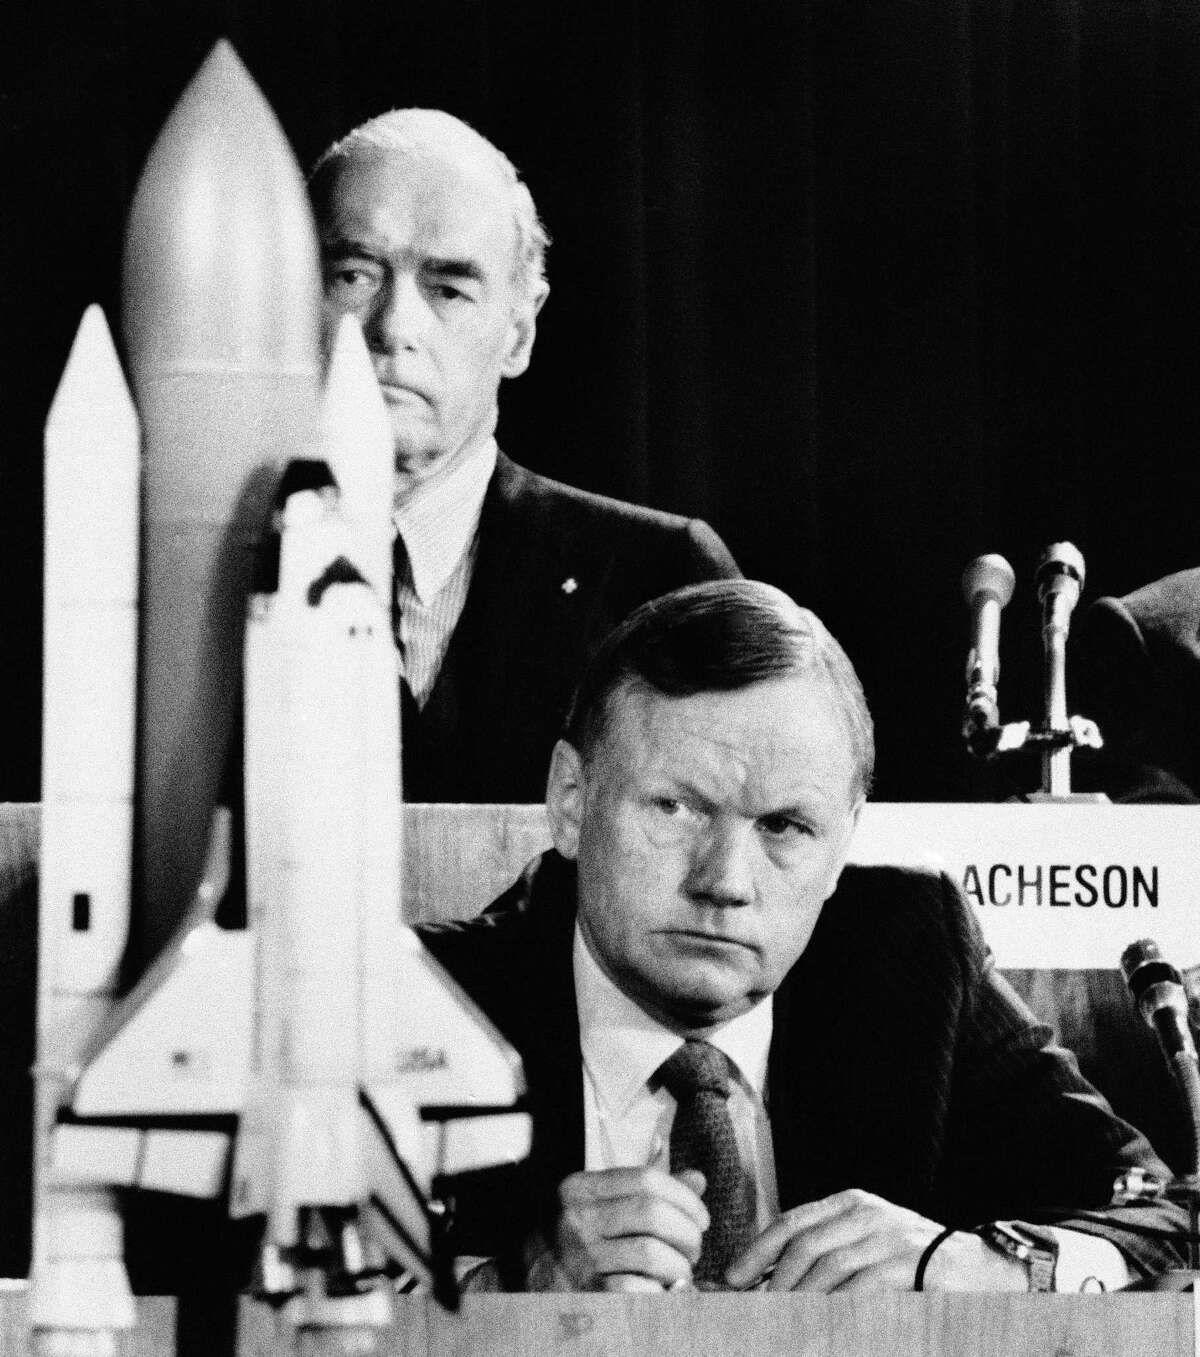 In this Feb. 11, 1986 file photo, former astronaut Neil Armstrong, a member of the presidential panel investigating the Space Shuttle Challenger explosion, listens to testimony before the commission in Washington, as David Acheson, a commission member, listens in the background. When Armstrong became the first man to walk on the moon, he captured the attention and admiration of millions of people around the world. Now fans of Armstrong and of space exploration have a chance to own artifacts and mementos that belonged to the modest man who became a global hero. The personal collection of Armstrong, who died in 2012, will be offered for sale in a series of auctions handled by Dallas-based Heritage Auctions.